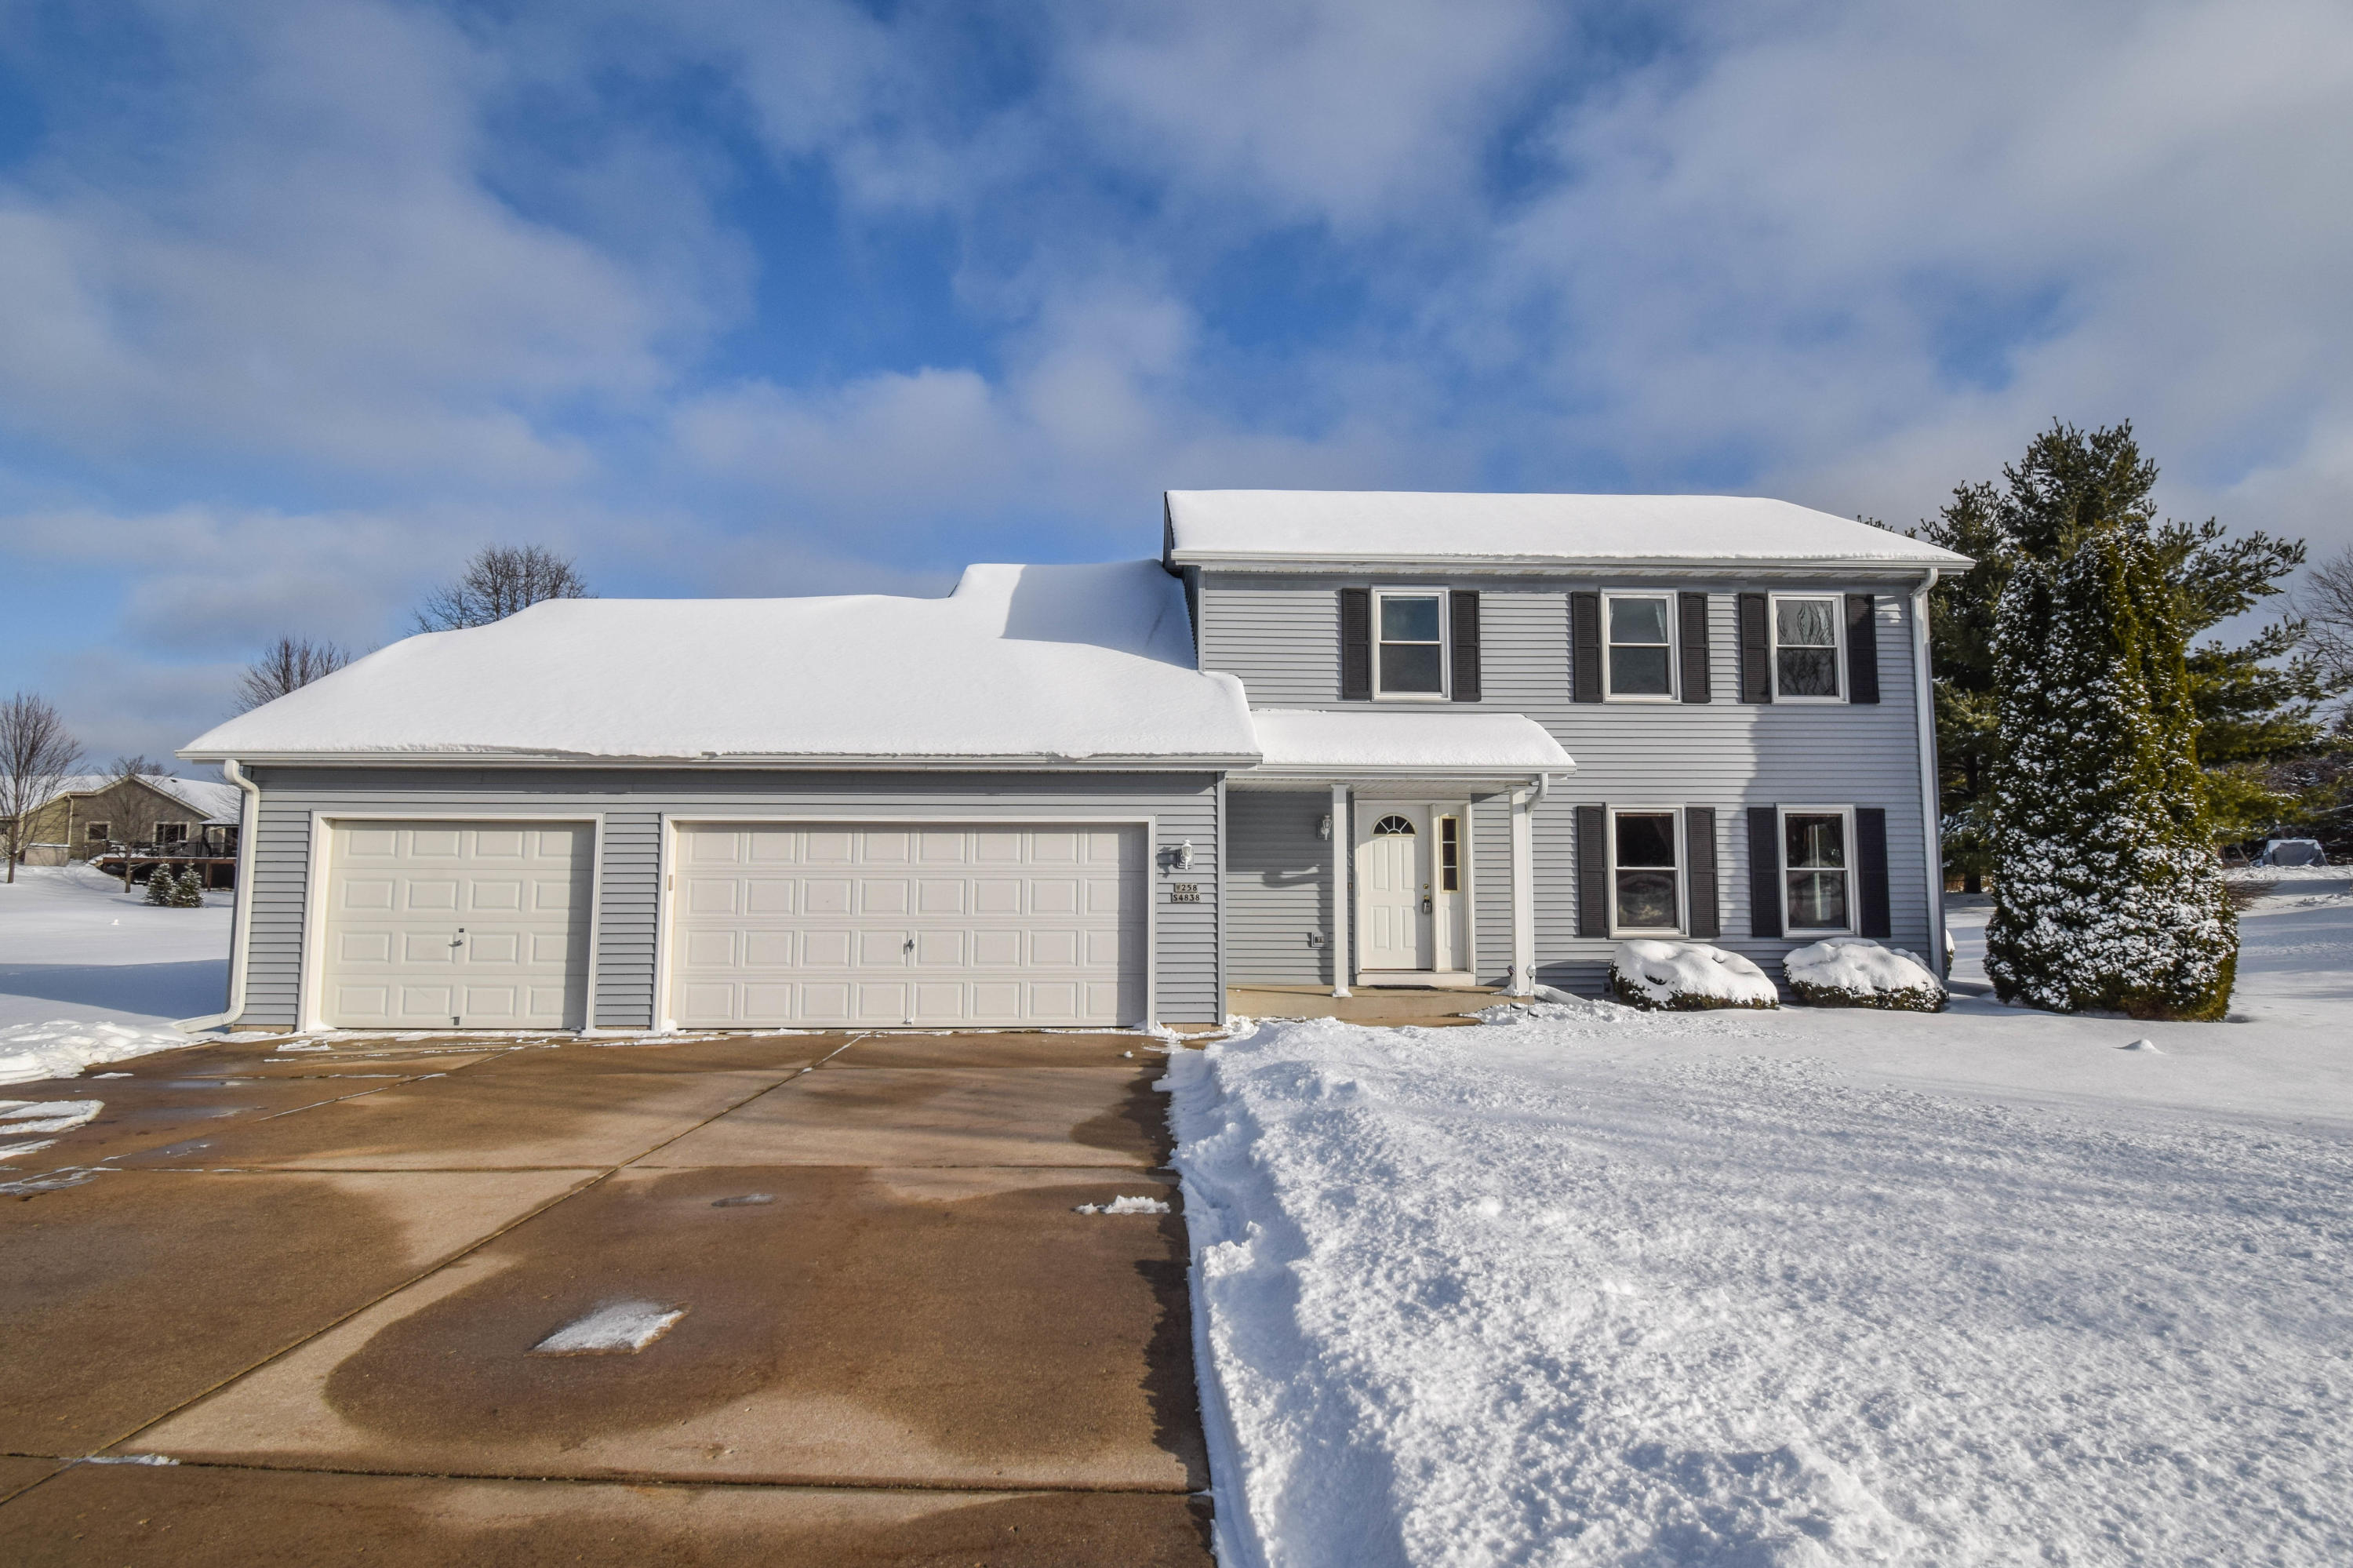 W258S4838 Red Clover Dr, Waukesha, Wisconsin 53189, 4 Bedrooms Bedrooms, ,1 BathroomBathrooms,Single-Family,For Sale,Red Clover Dr,1722908